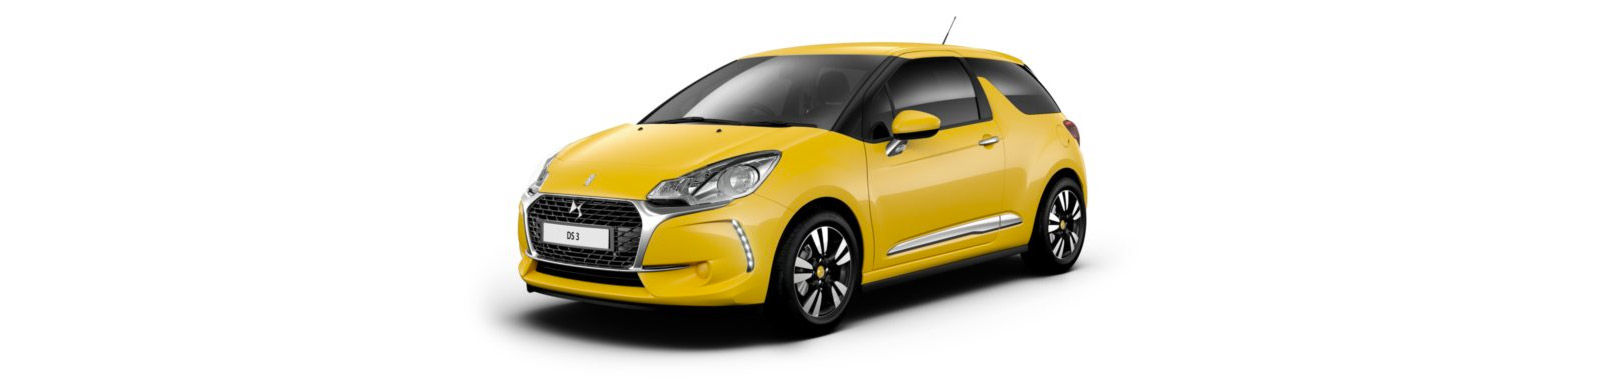 citroen ds 3 cabriolet colours guide prices carwow. Black Bedroom Furniture Sets. Home Design Ideas